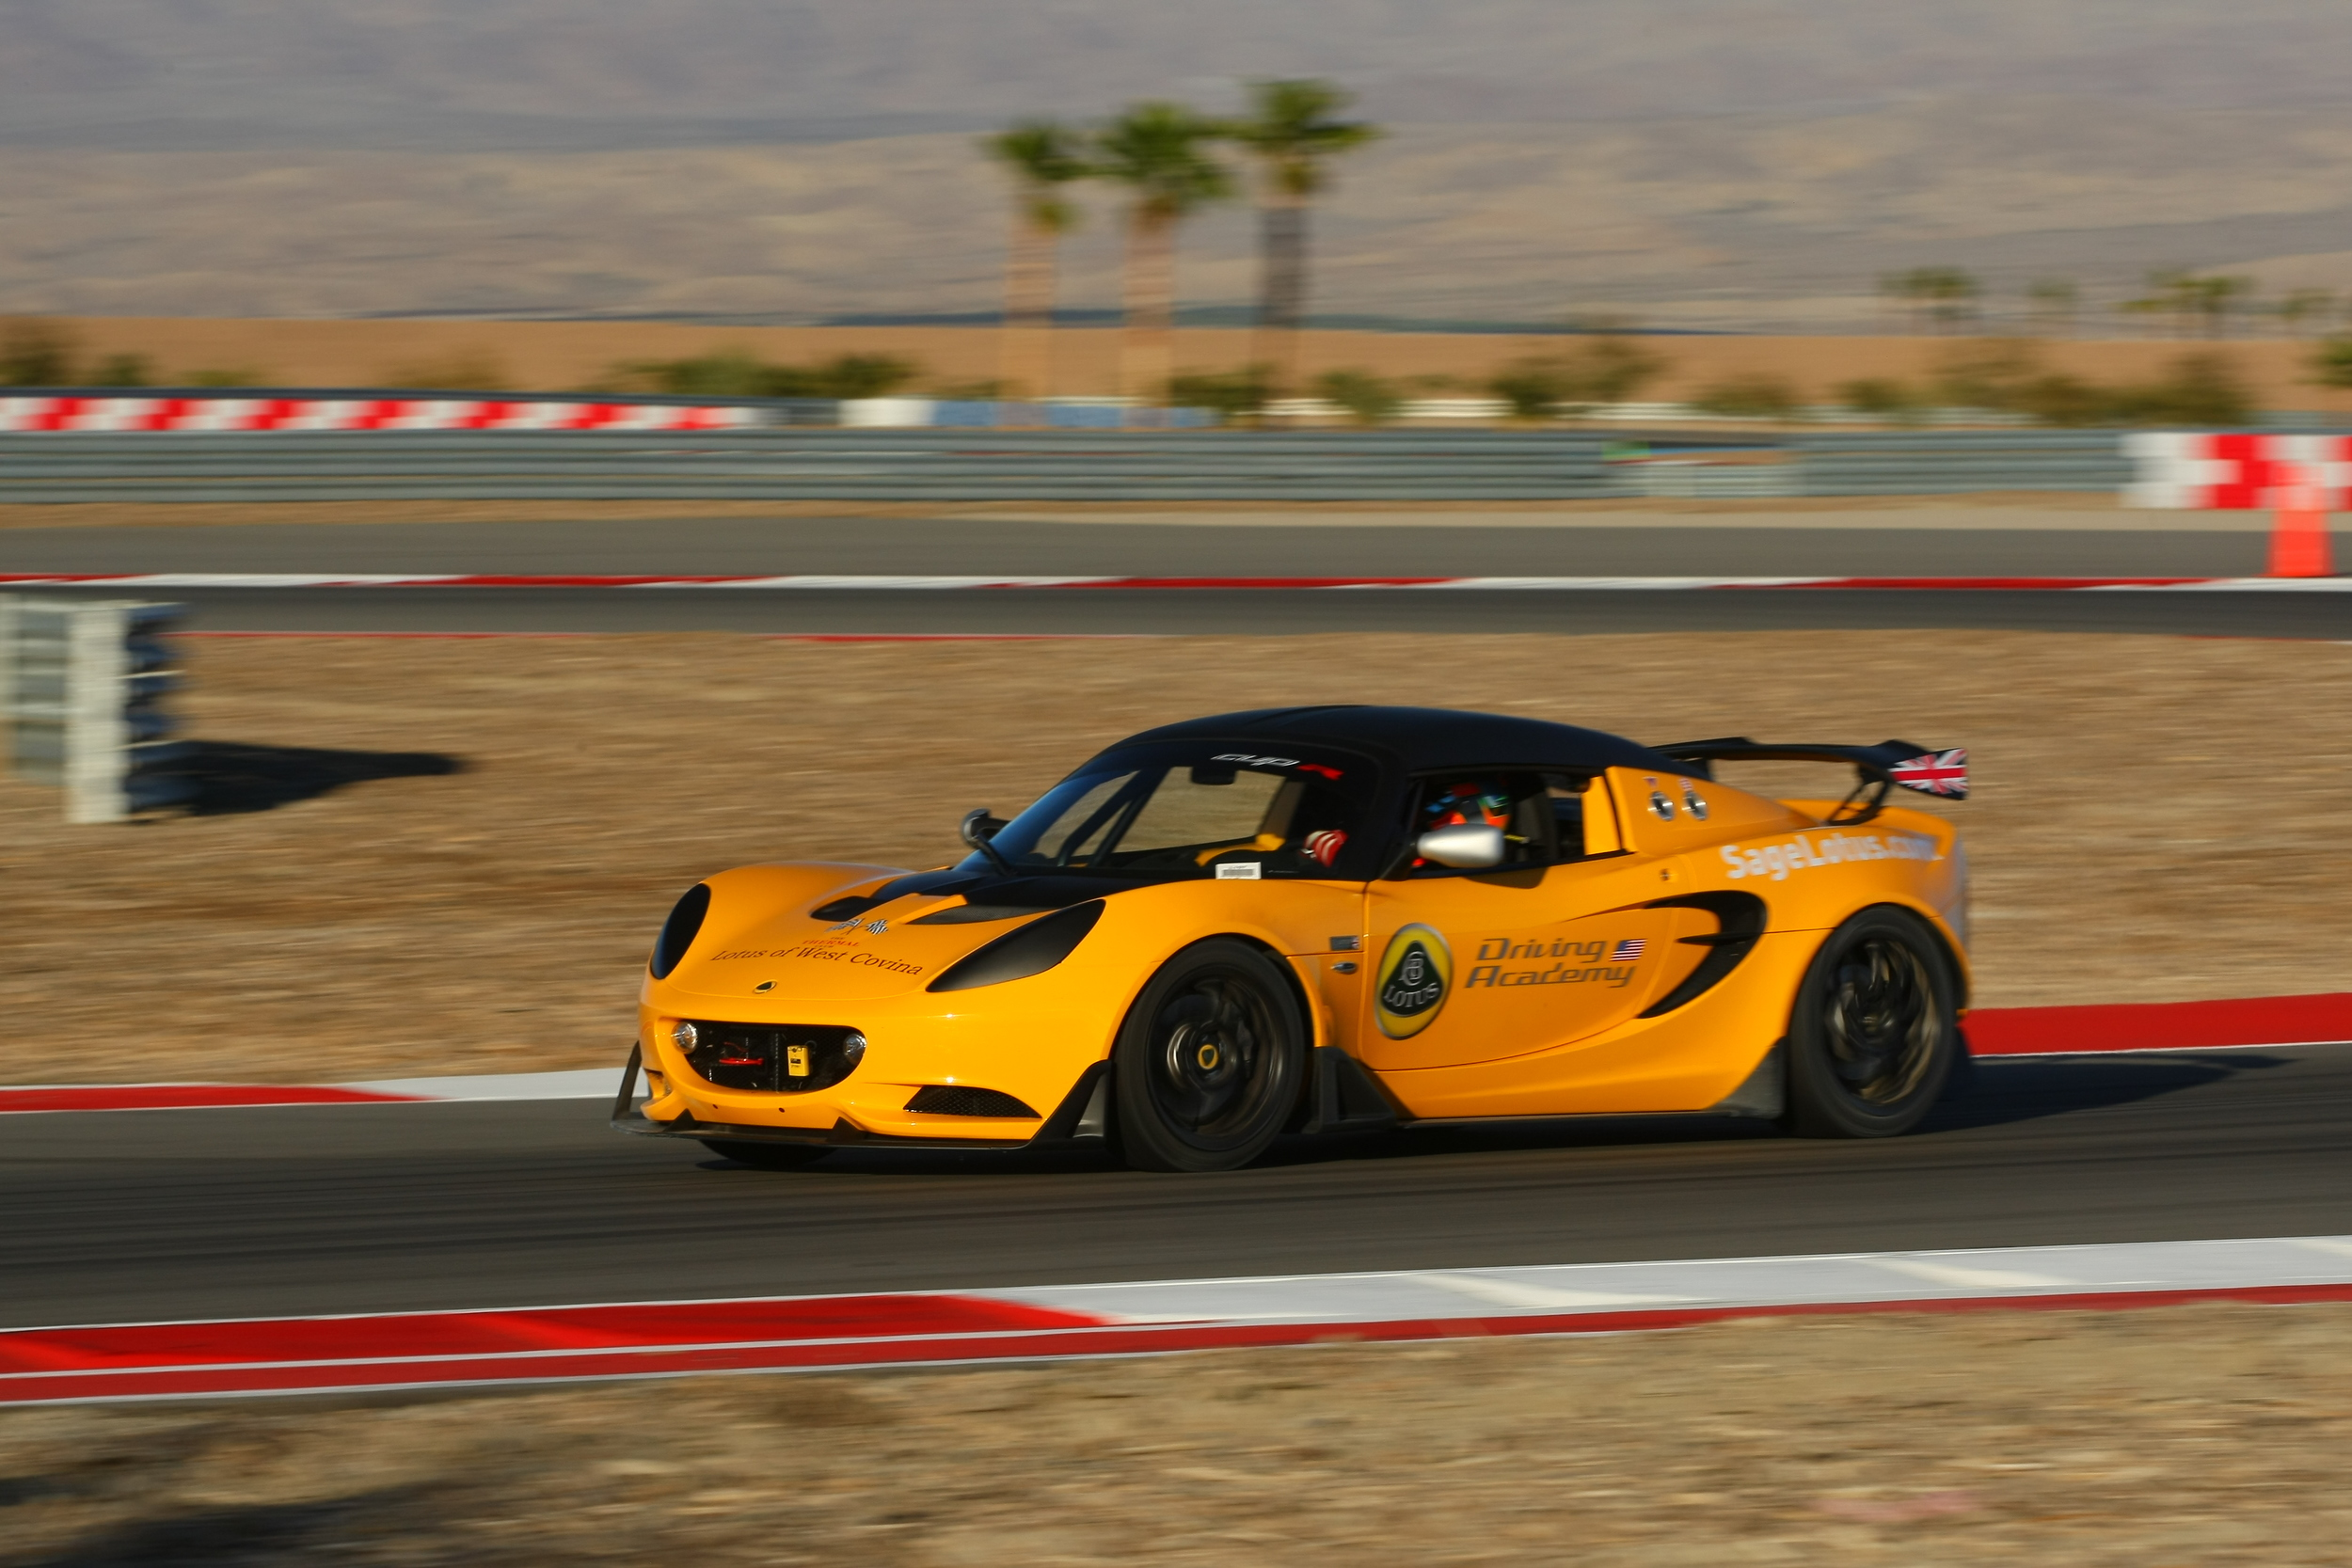 Dec-05-06-2015-Lotus at Thermal - Saturday - Lotus Cup - Race - AC2_3816.JPG